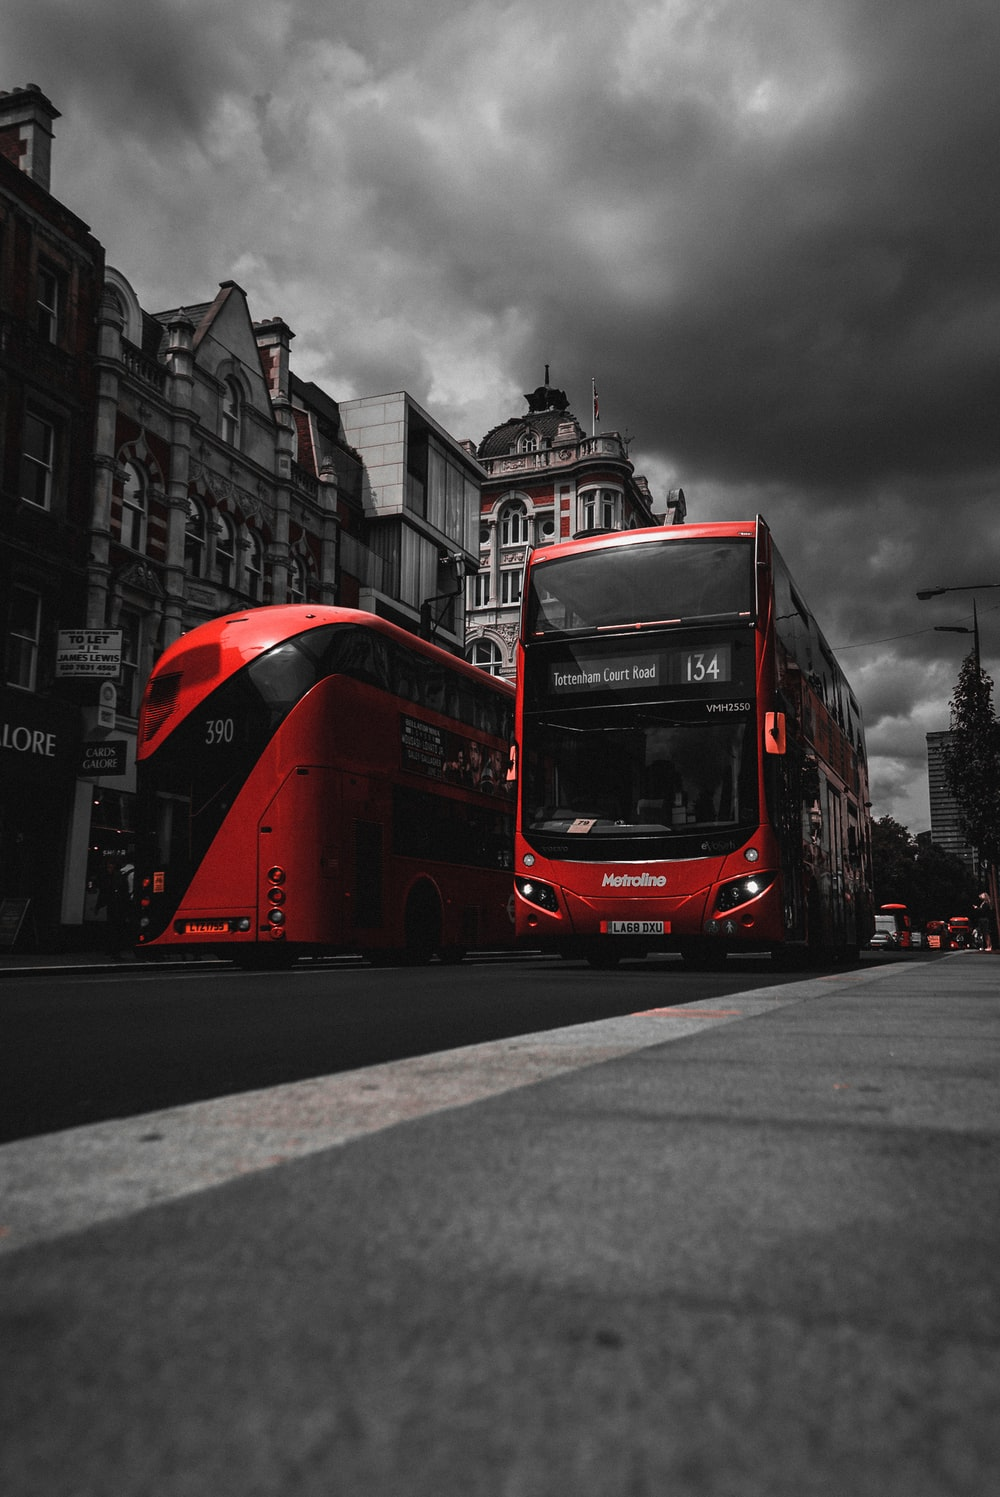 red and black bus on road near concrete buildings